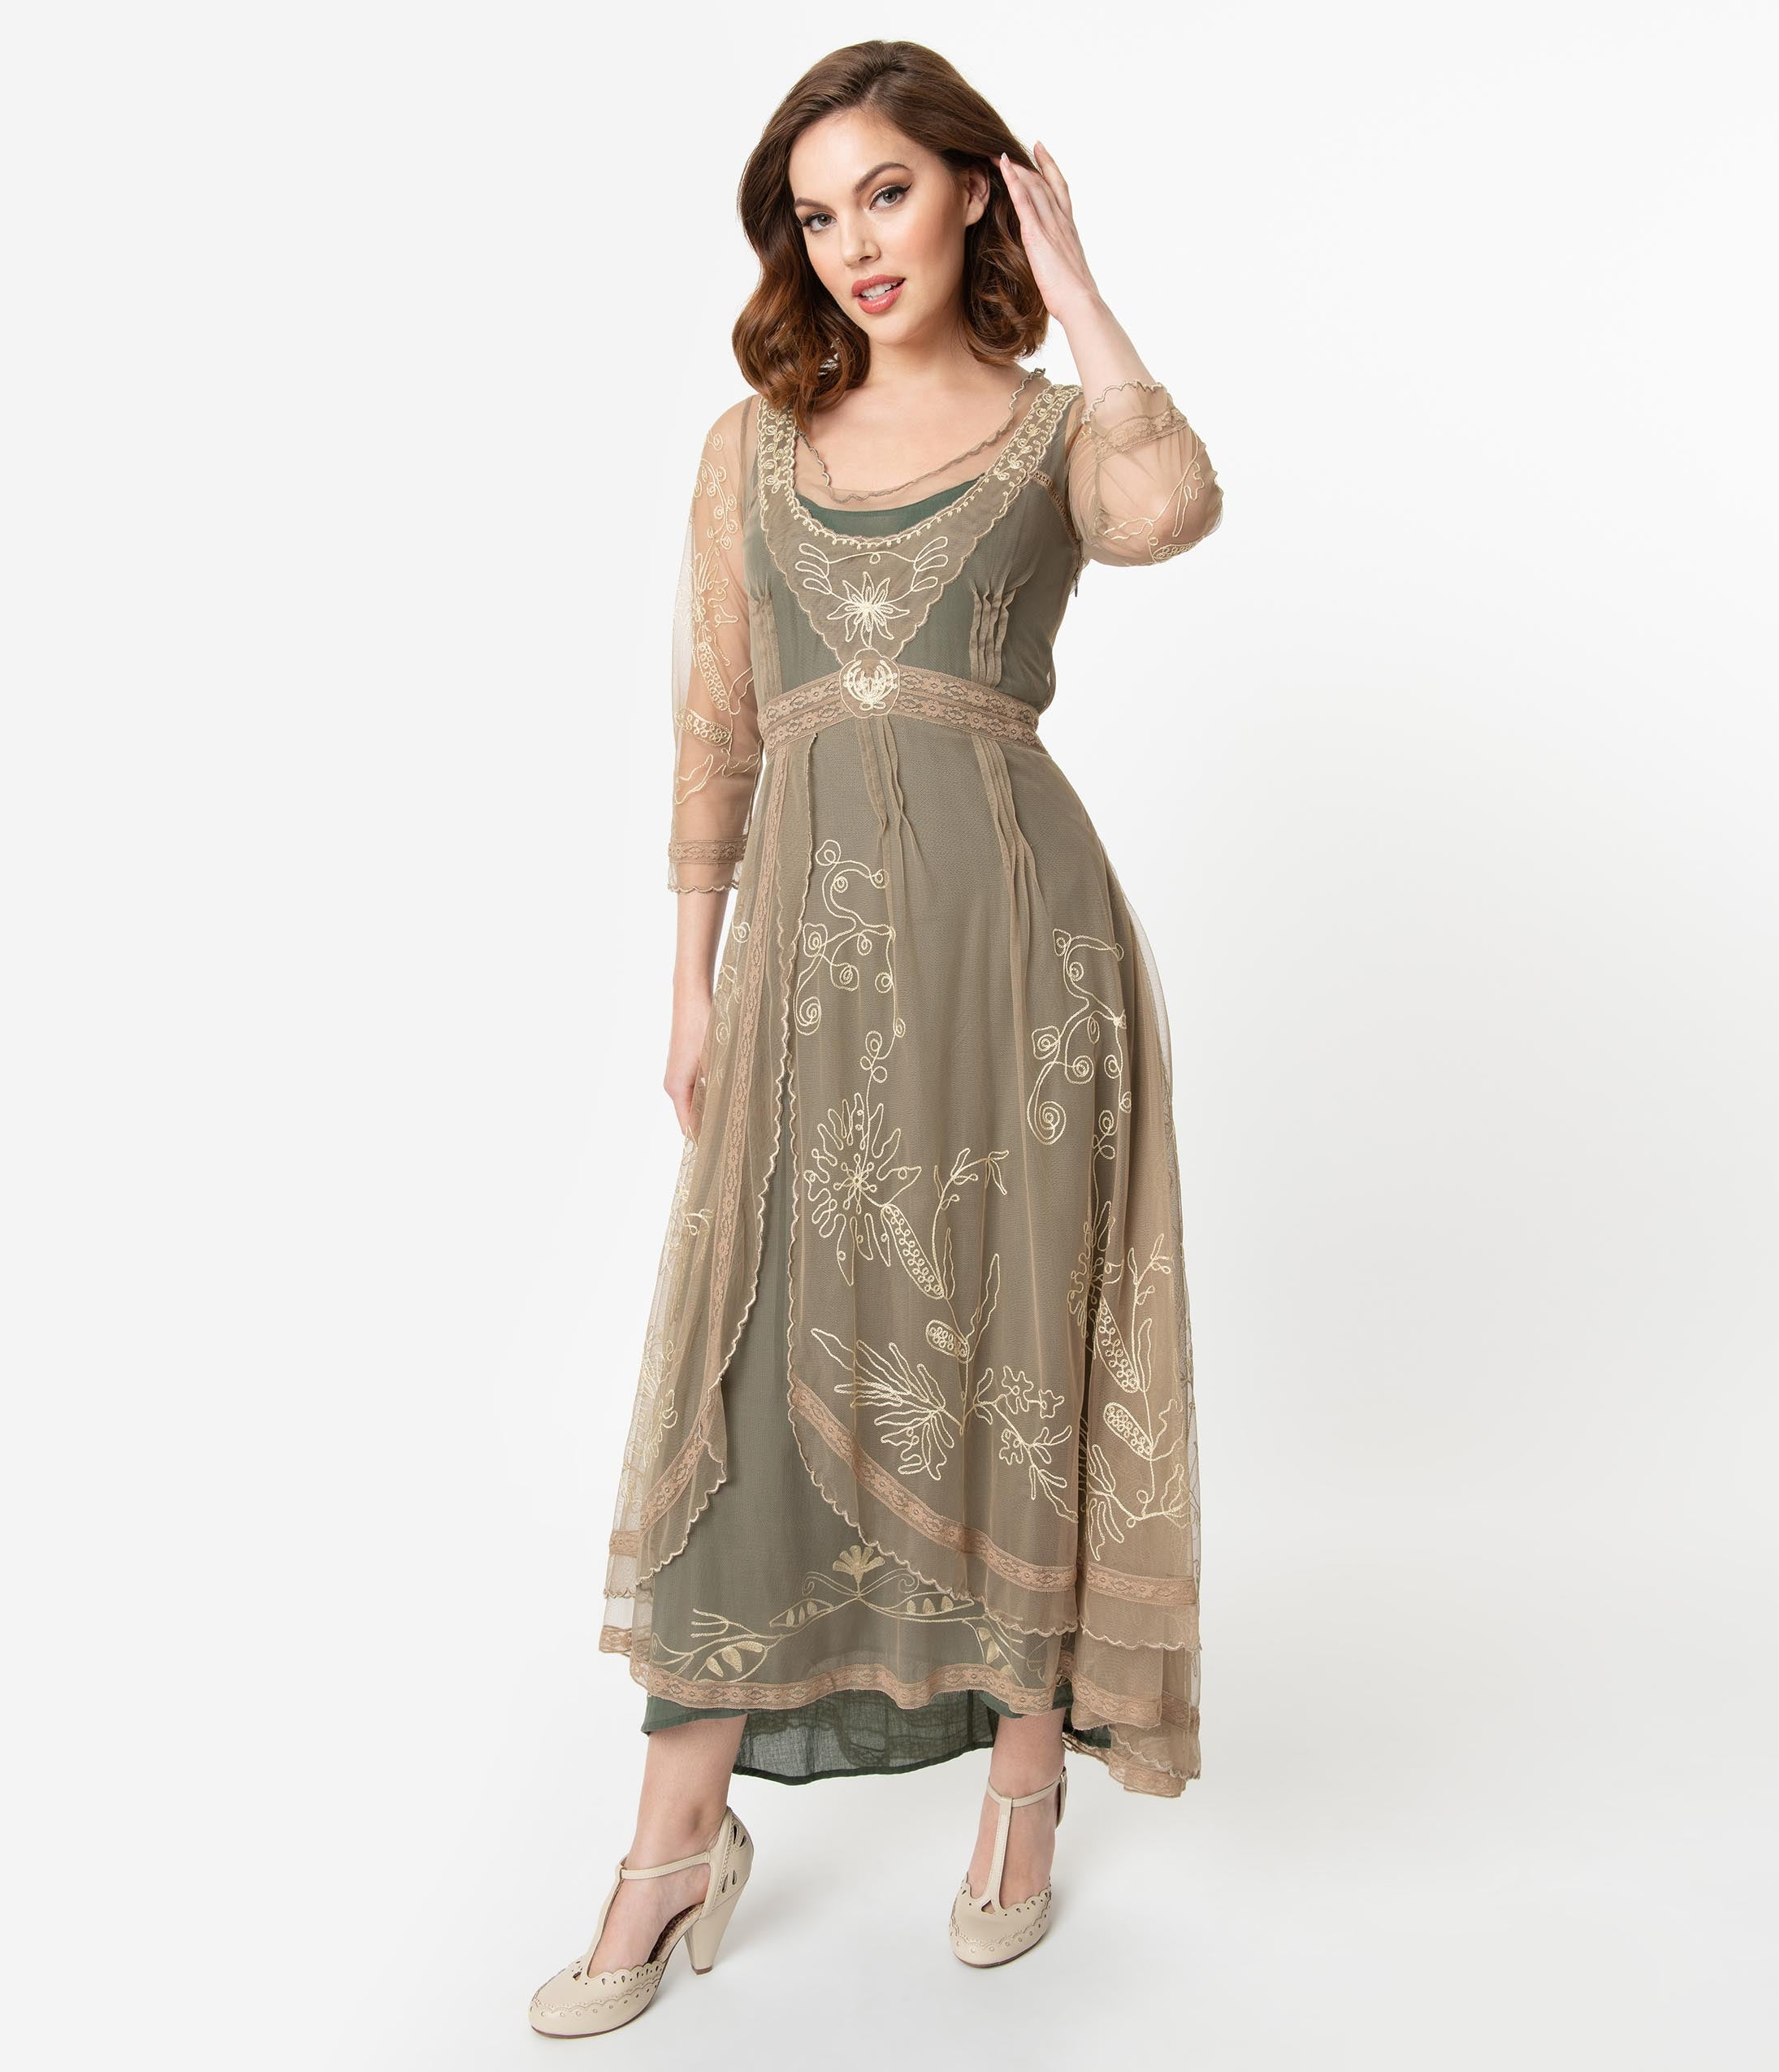 Titanic Fashion – 1st Class Women's Clothing Sage  Gold Embroidered Tulle Downton Abbey Edwardian Tea Party Flapper Dress $274.00 AT vintagedancer.com